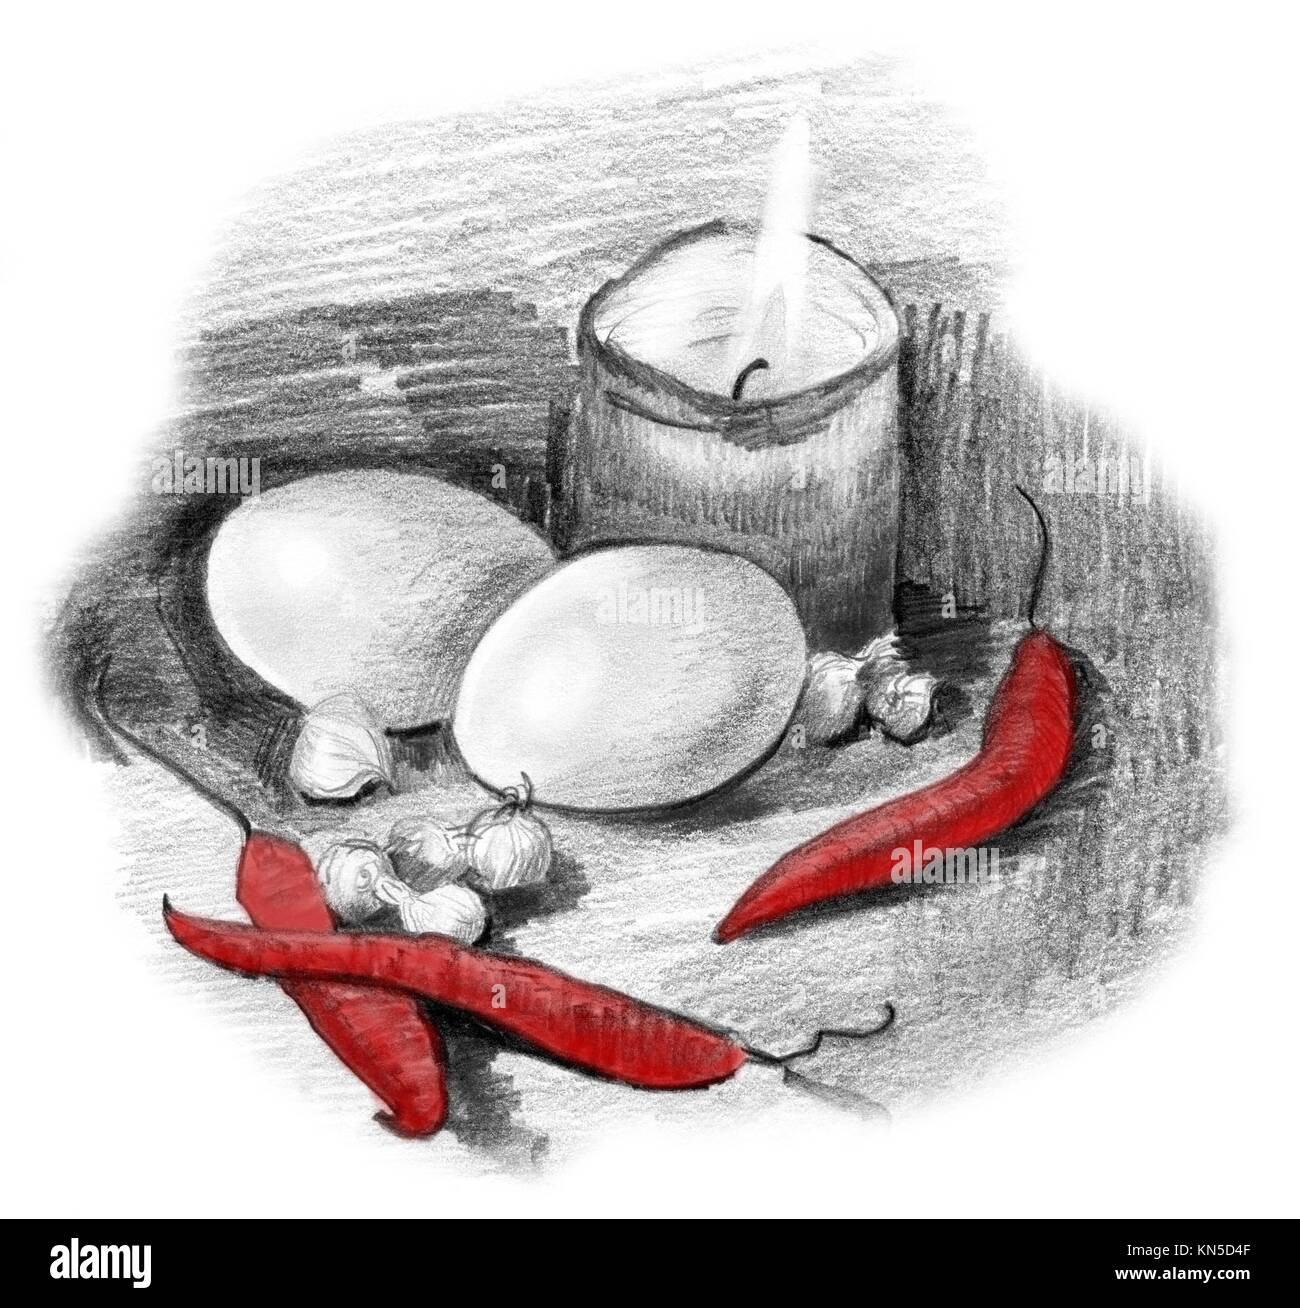 Eggs peppers crocus bulbs and candle light still life pencil sketch drawing in black and white with only the peppers in red color